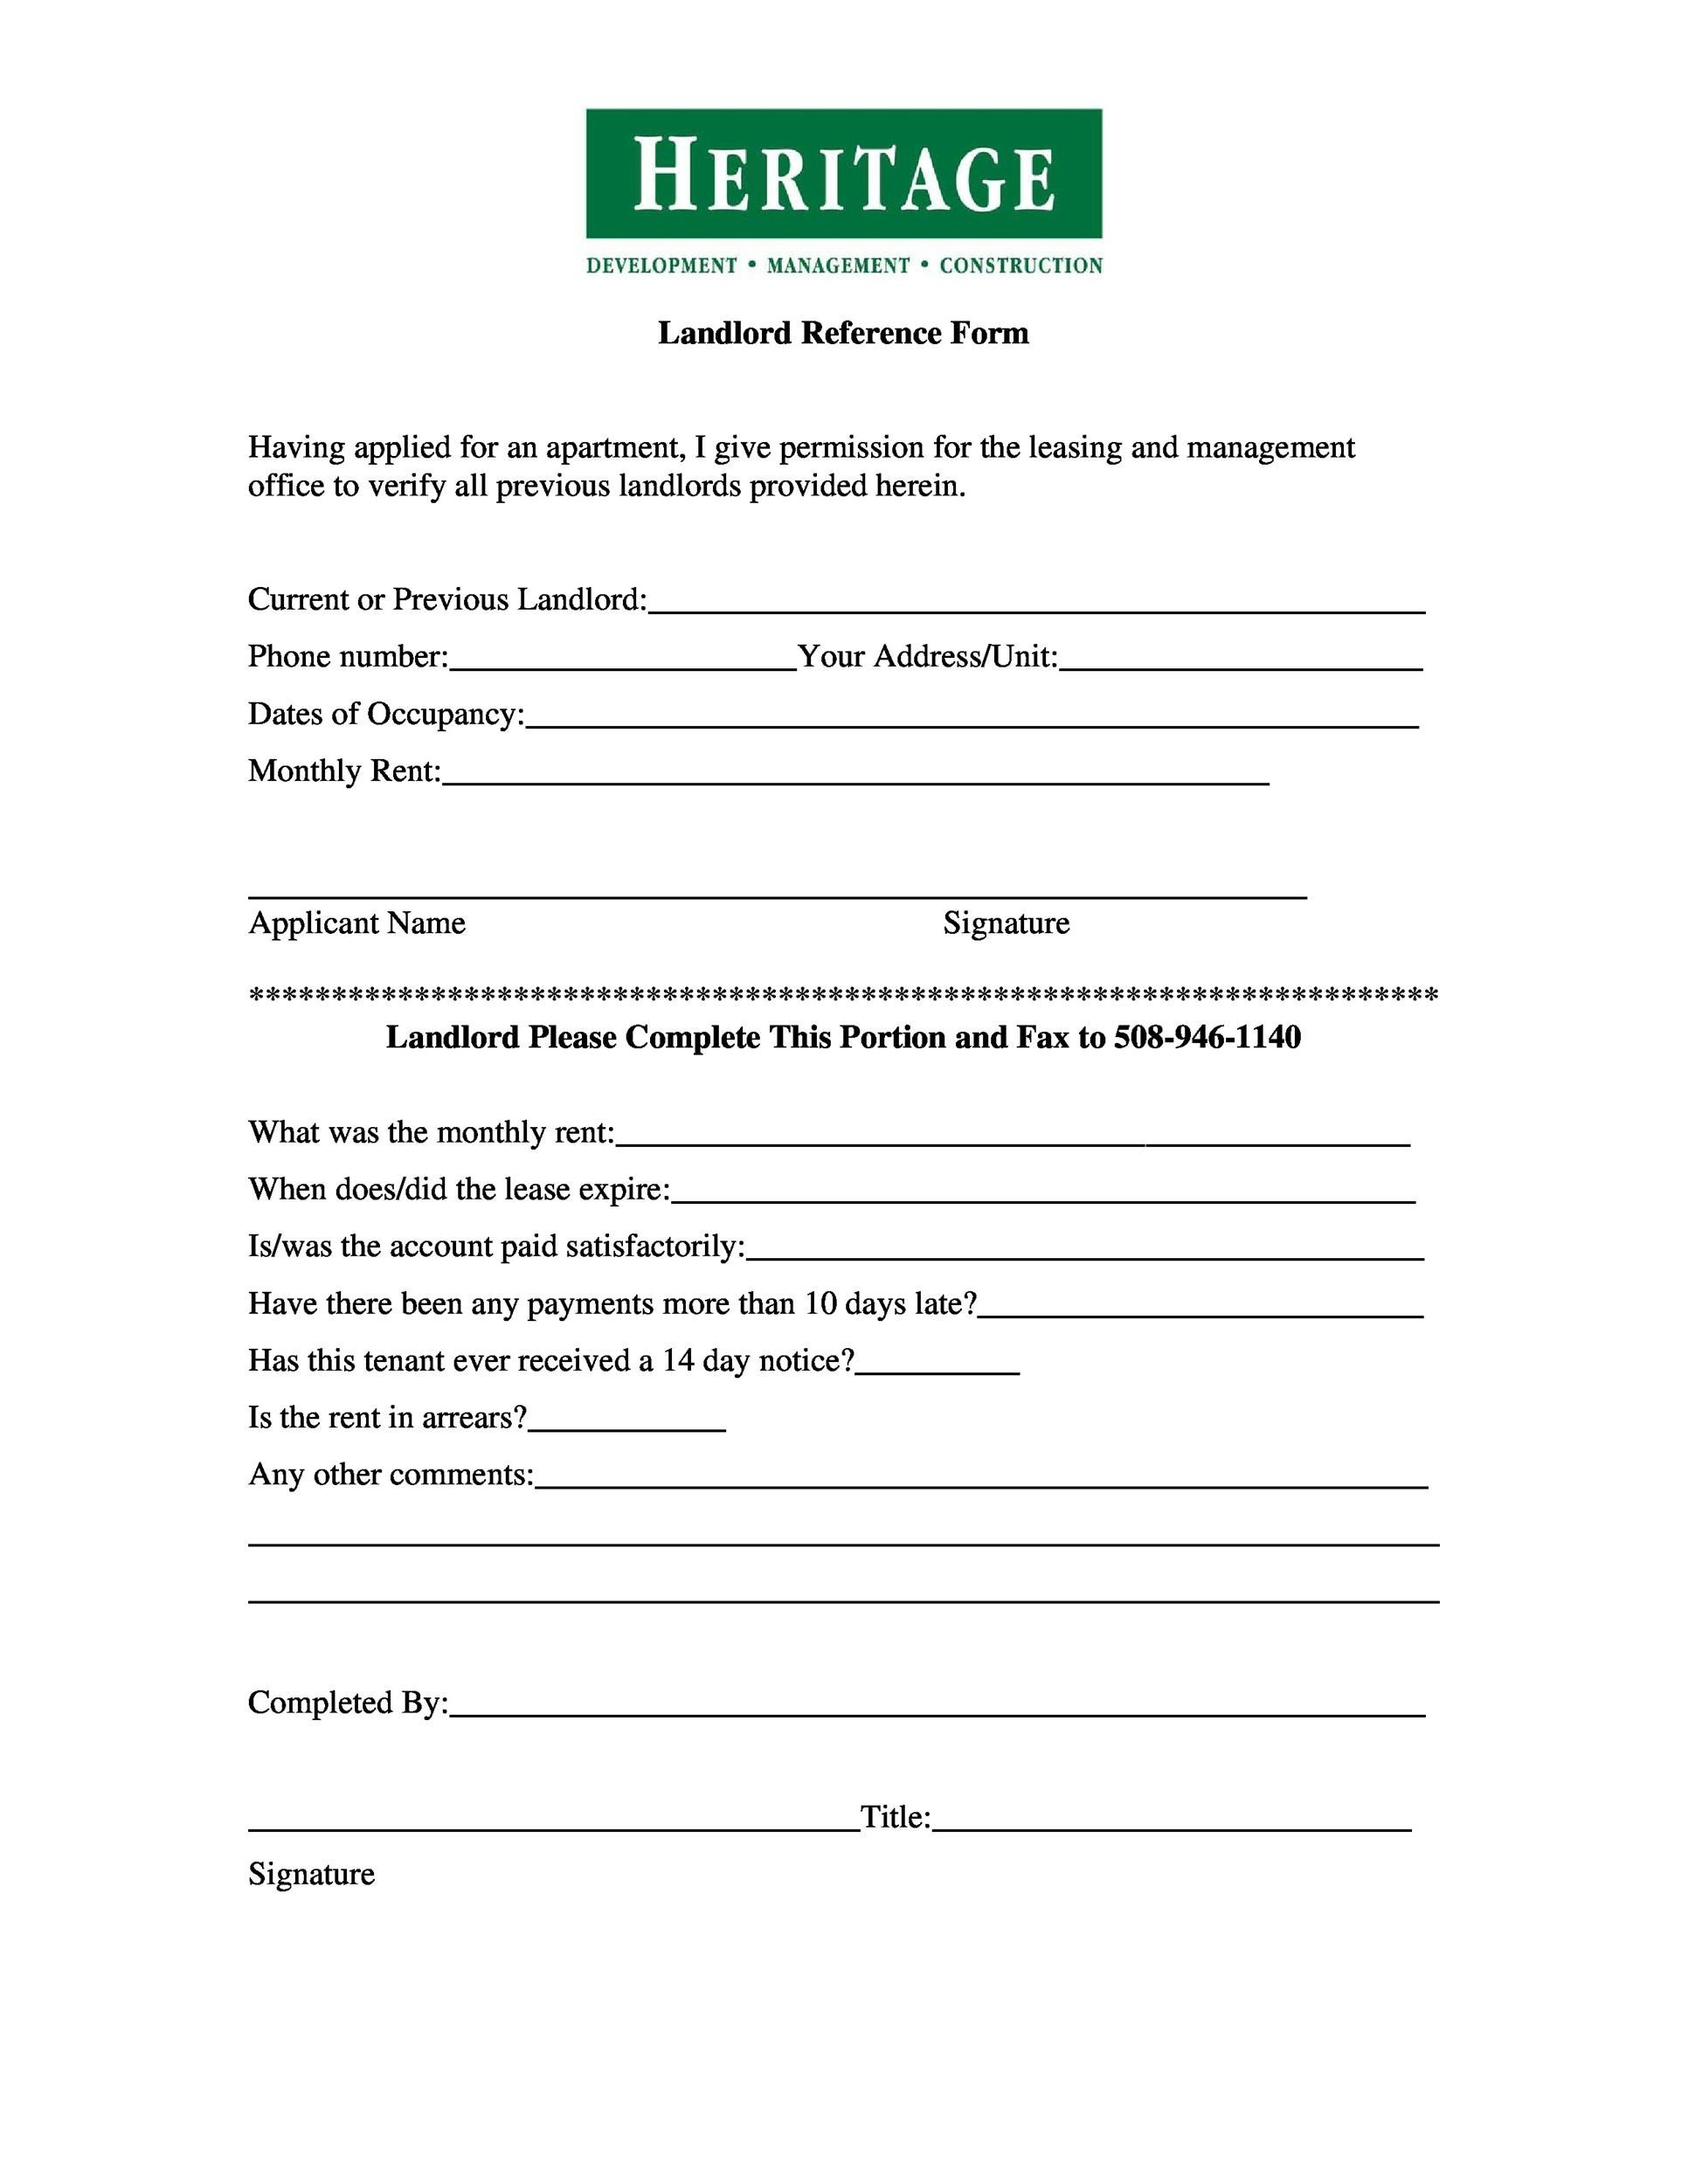 Free landlord reference letter 04